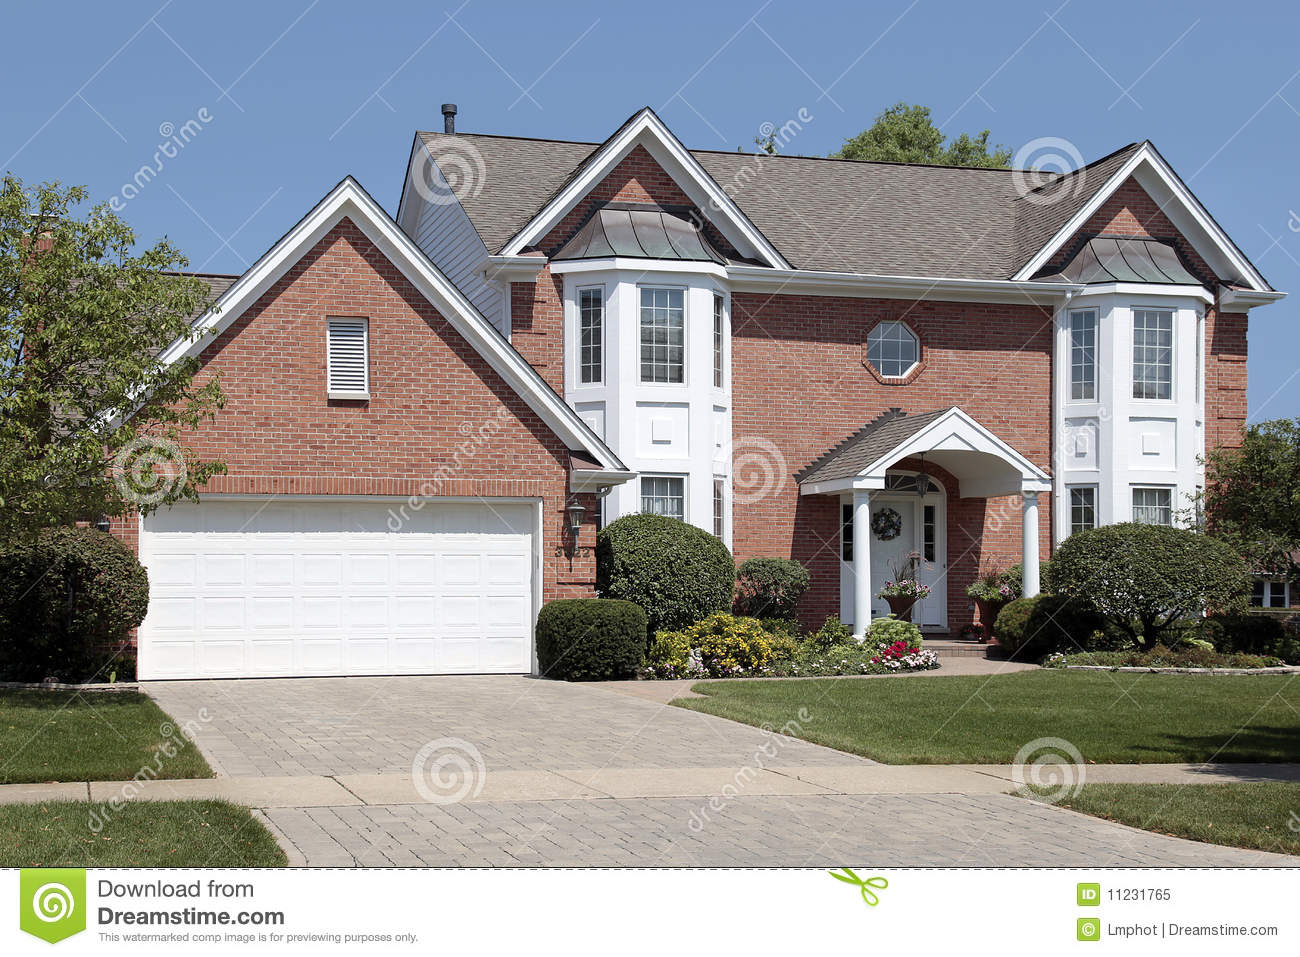 Brick Home With Columns In Entryway Royalty Free Stock Photo